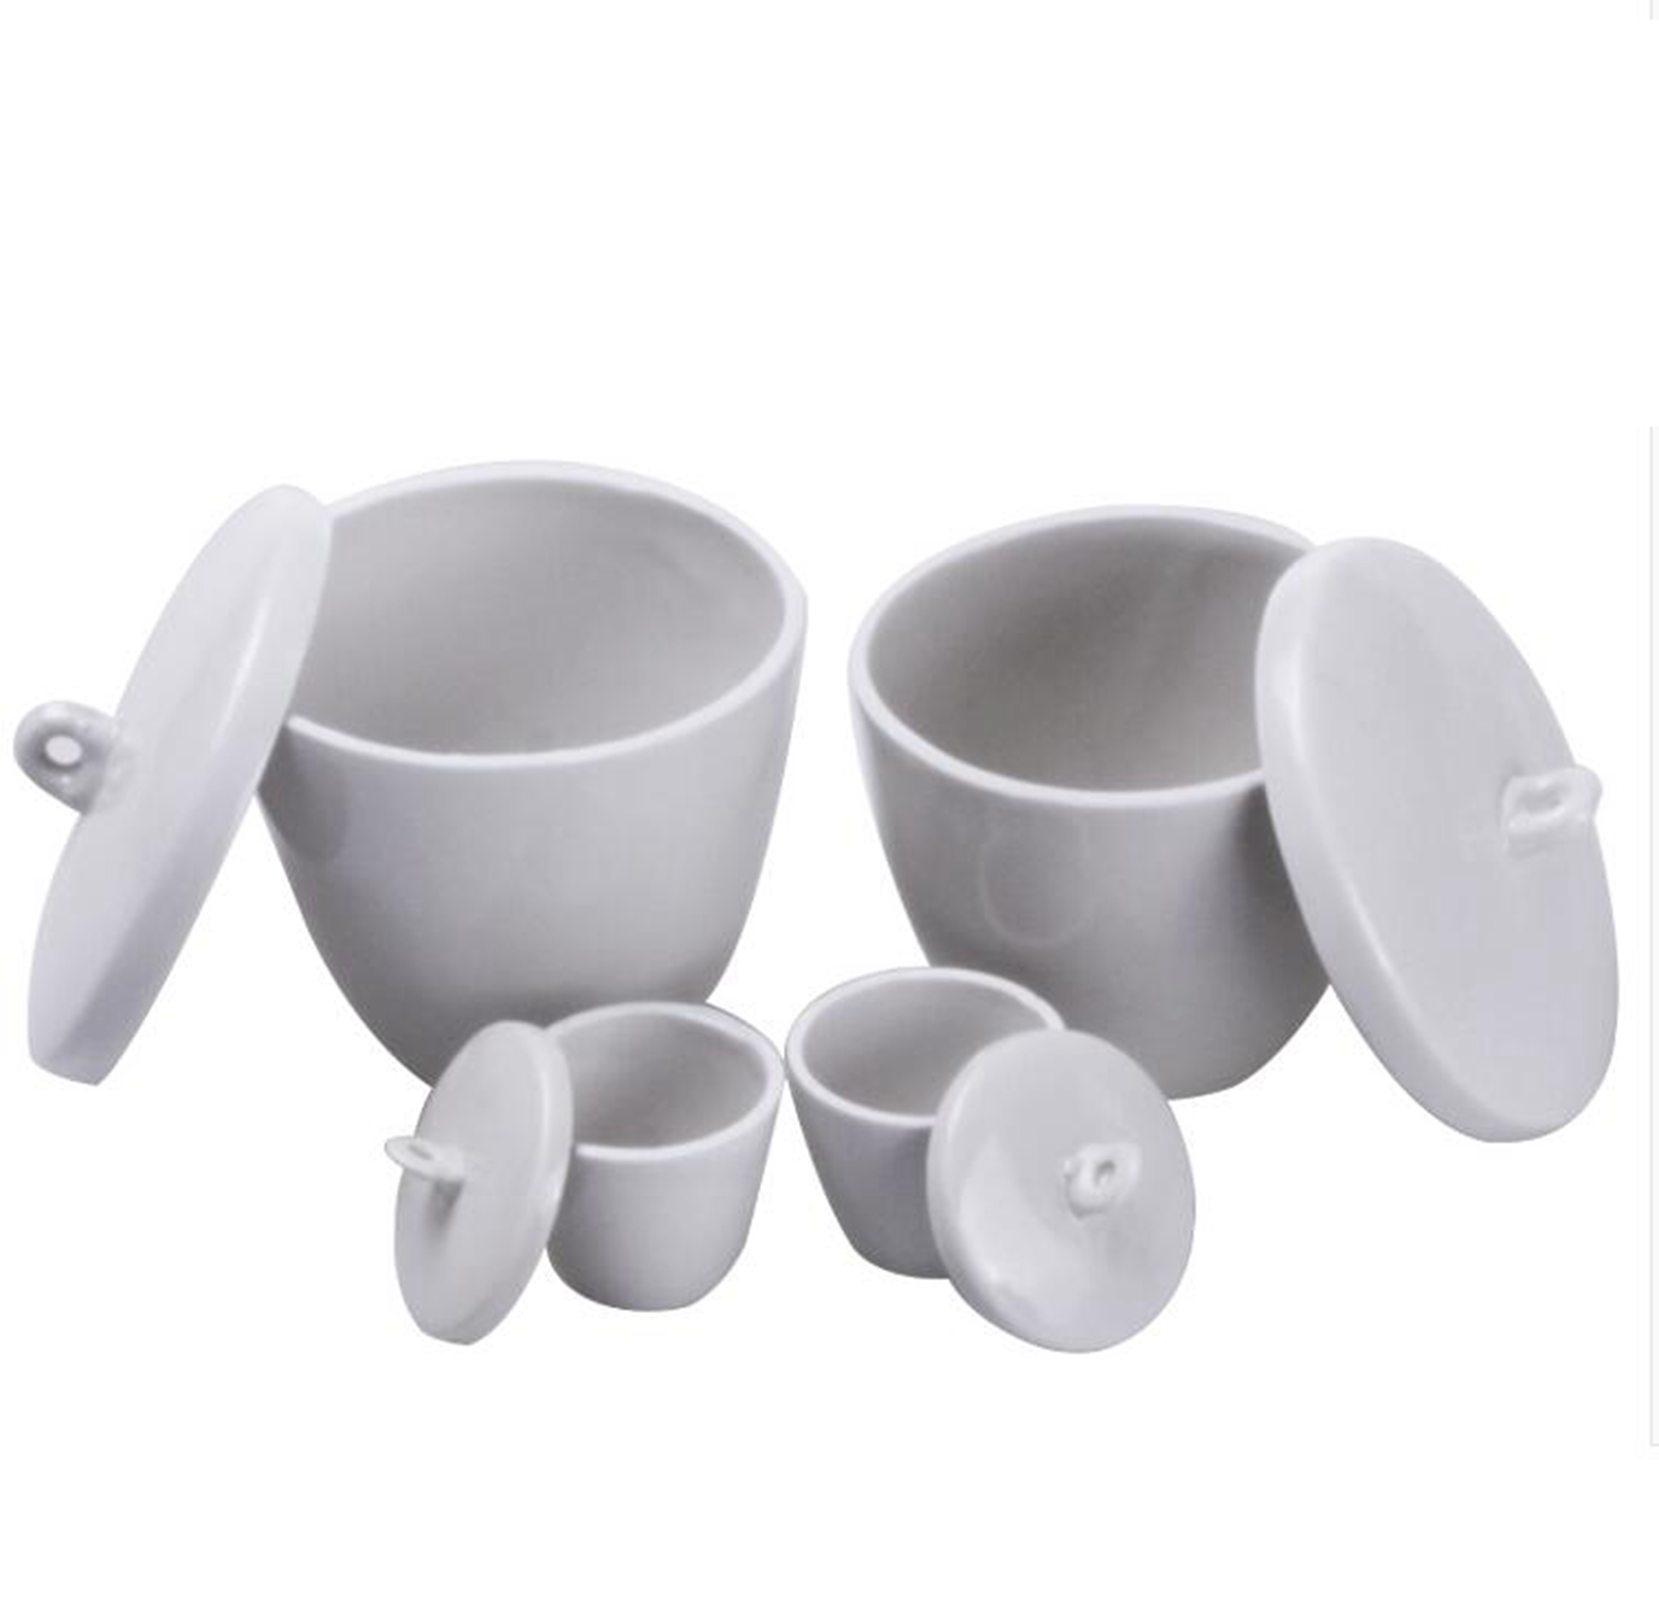 FAST SHIP 150 grams MELTING DISH CRUCIBLE CASTING FOR SILVER /& GOLD 100 dwt